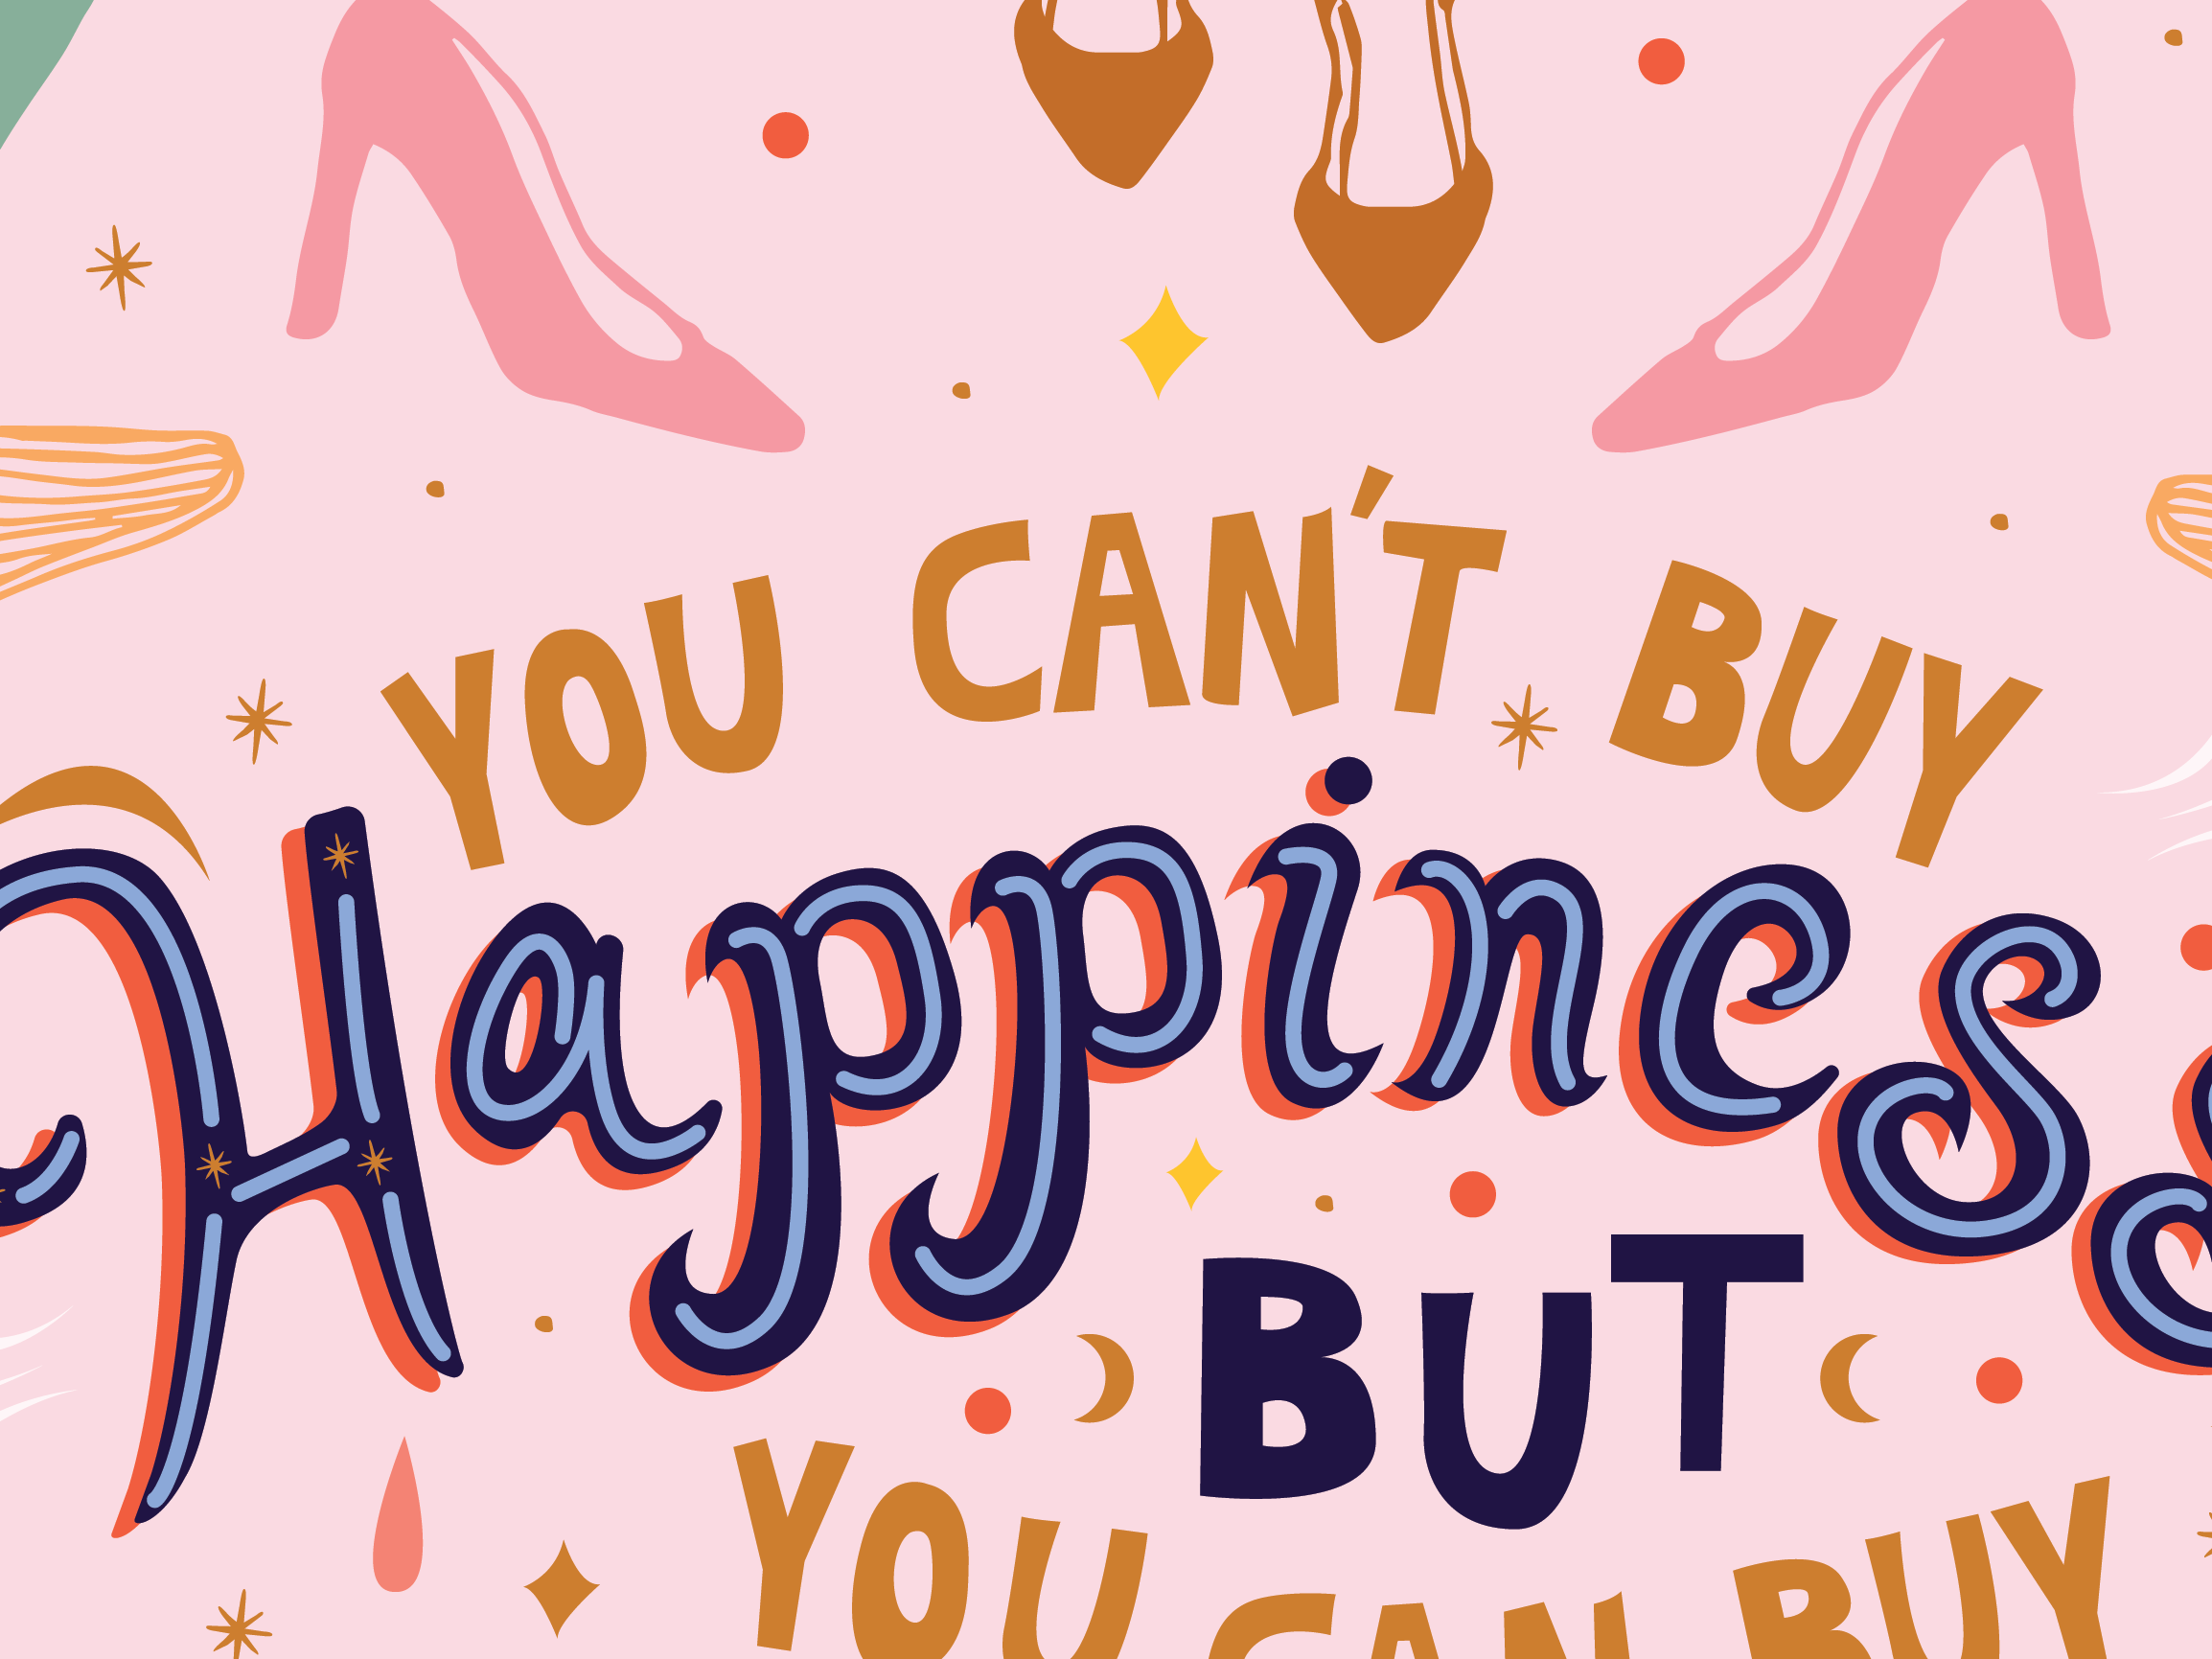 Happiness and stuff